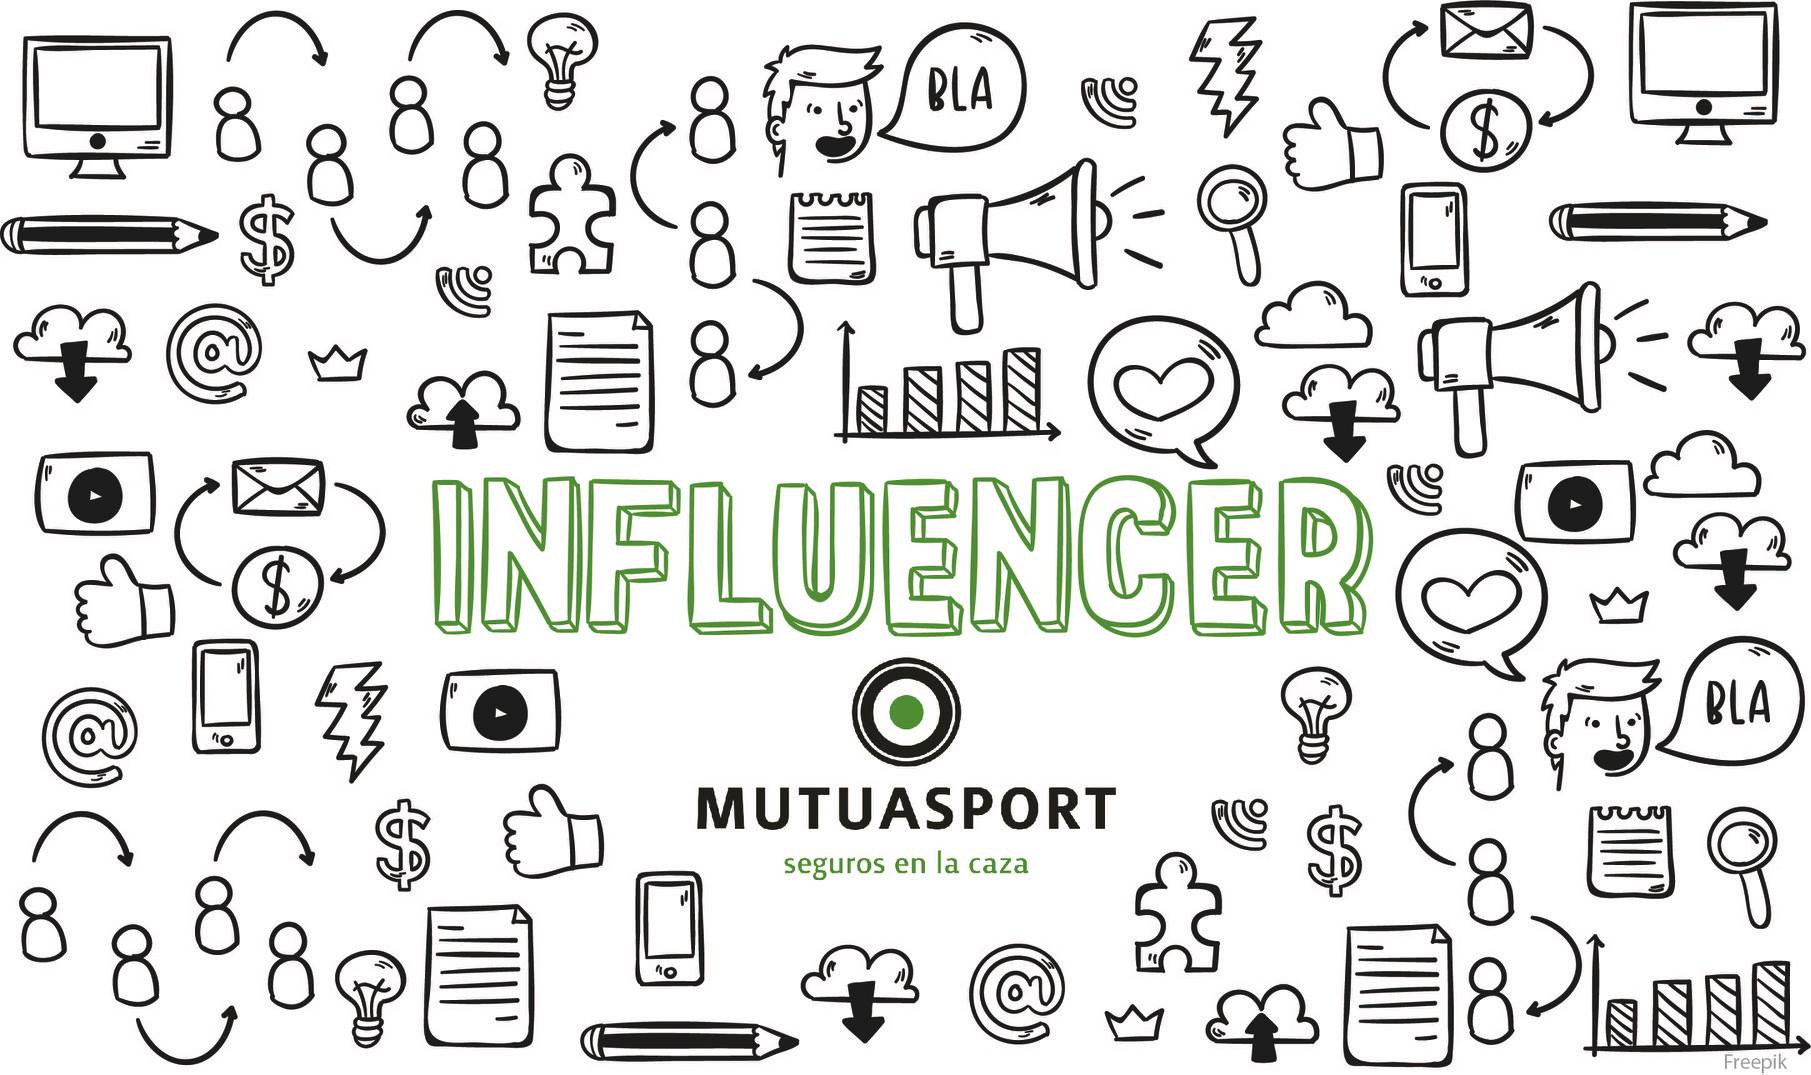 Cartel de la campaña de influencers Stop Accidentes de Caza